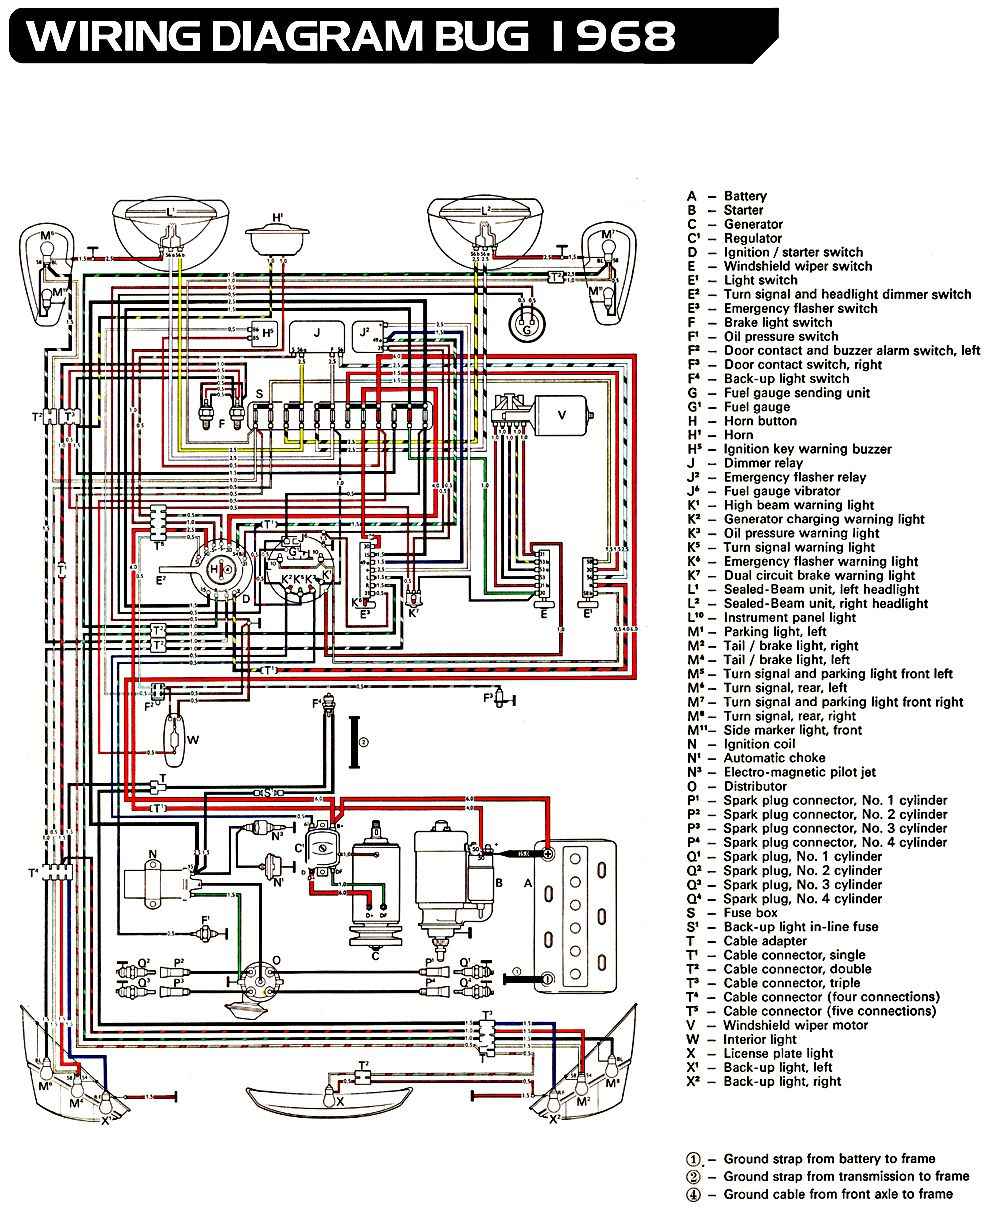 medium resolution of 68 vw bug fuse diagram wiring diagram vw bug ignition wiring diagram 73 vw wiring diagram